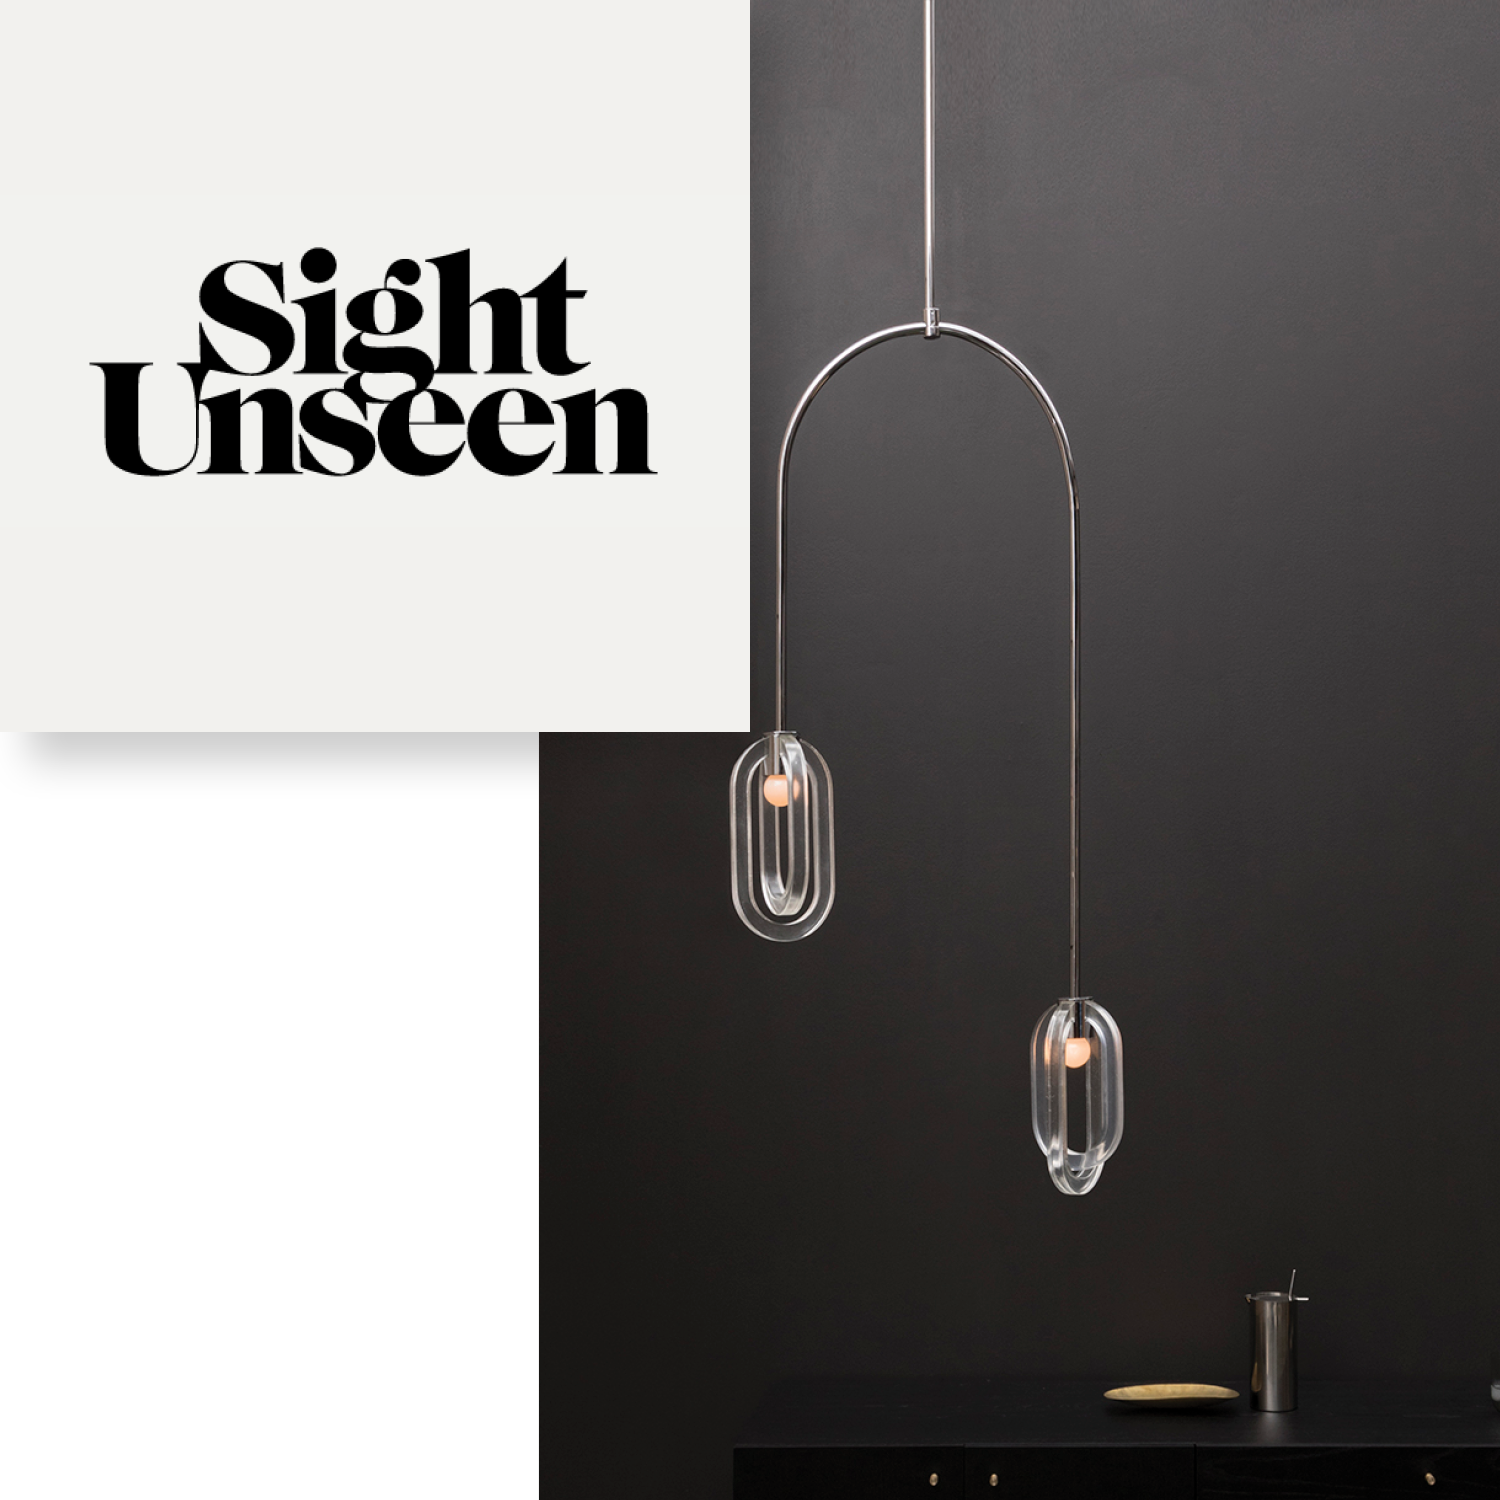 Sight Unseen, March 2018